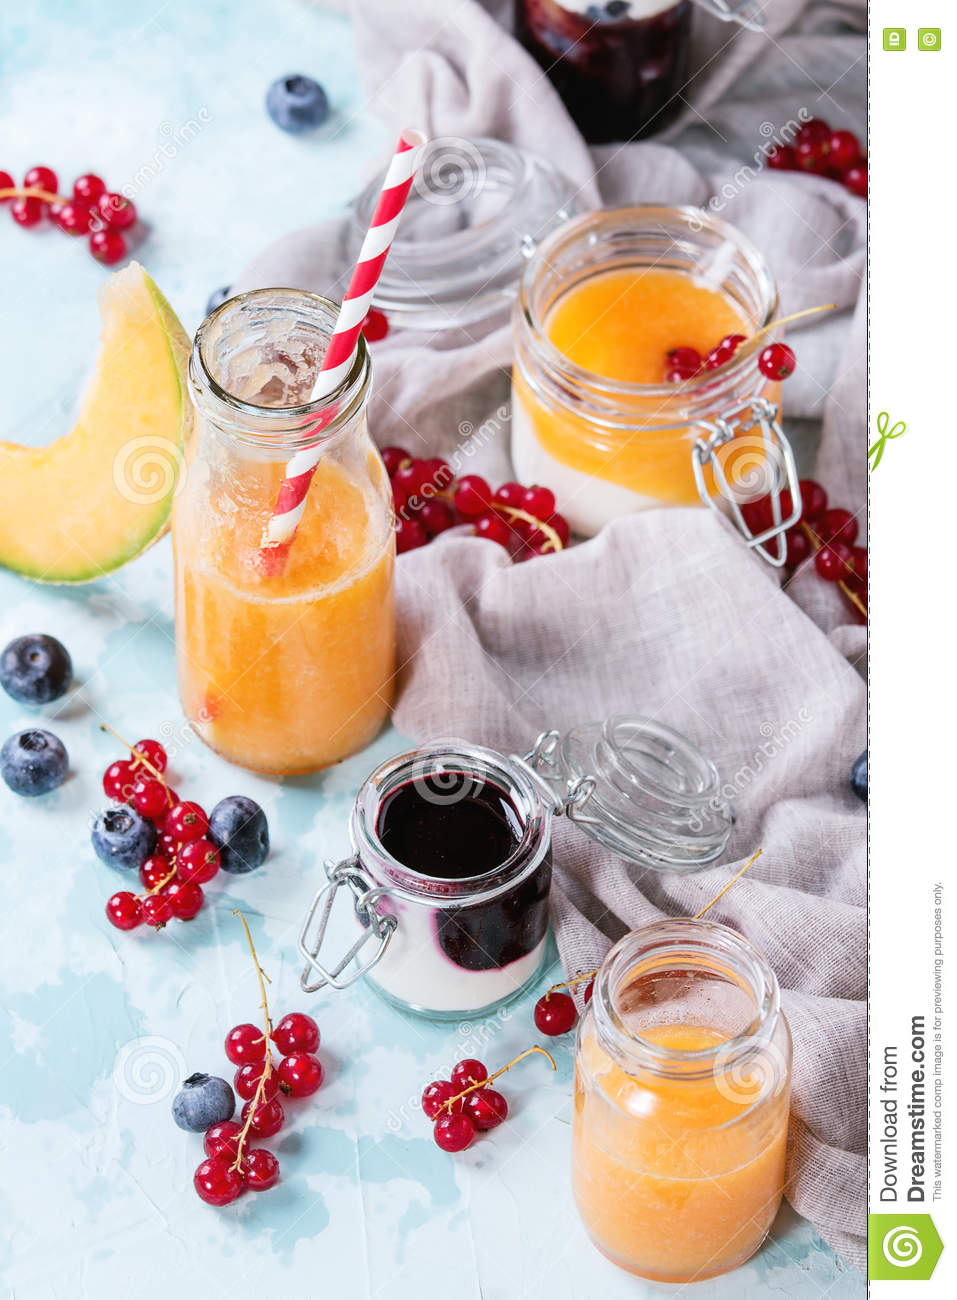 Melon and blueberries smoothie